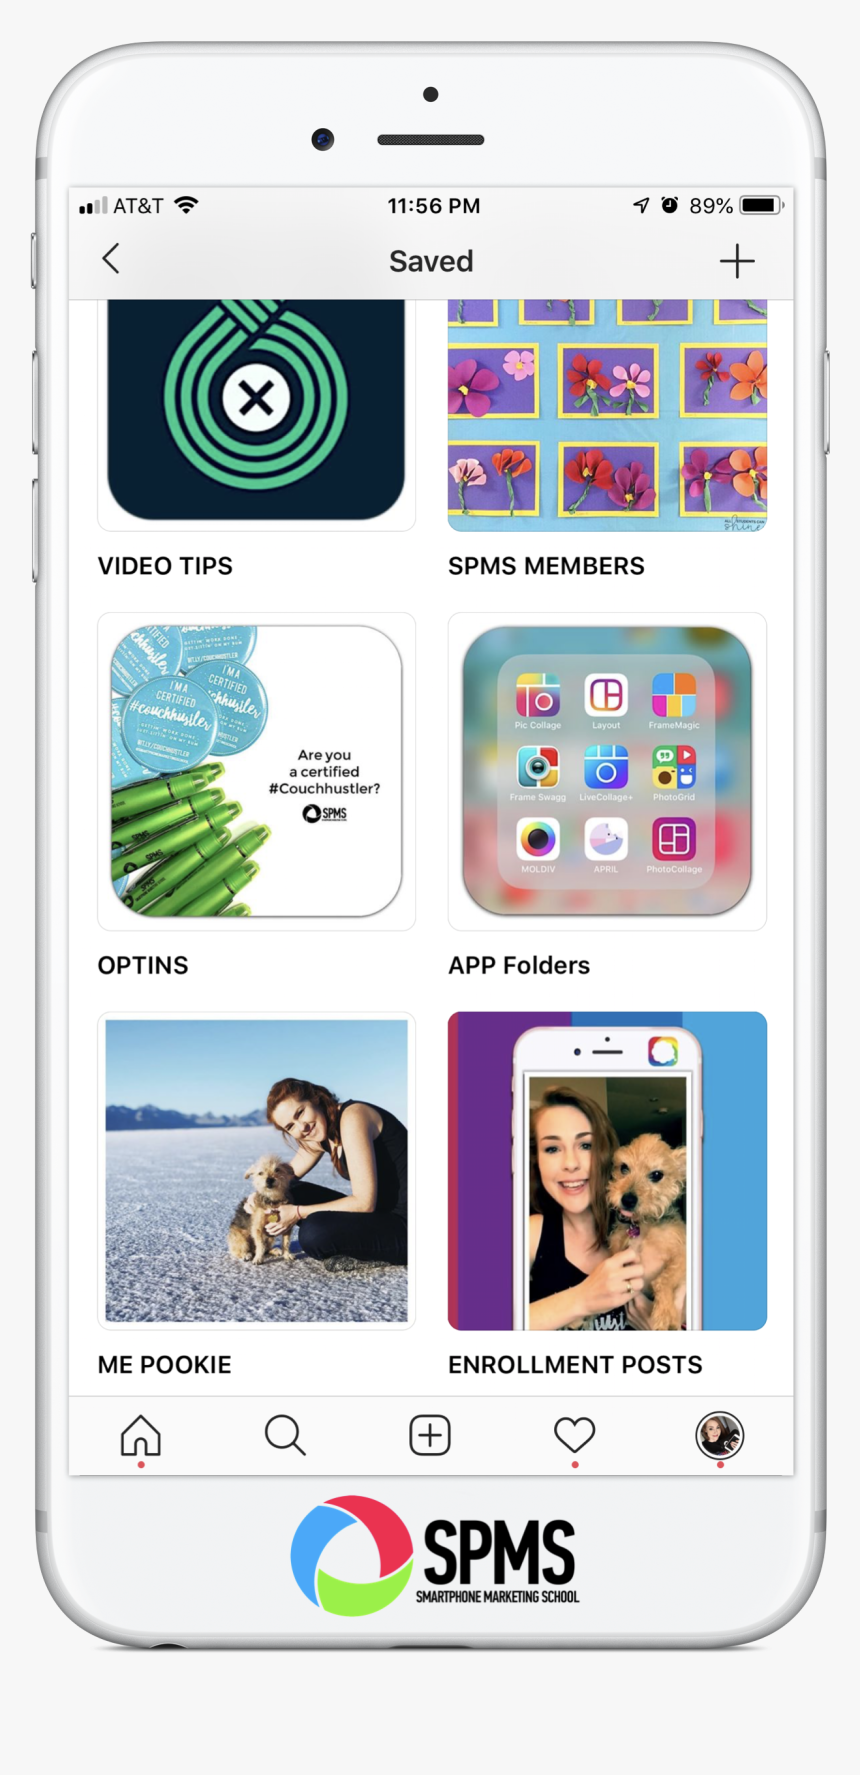 Categories Post On Instagram, HD Png Download, Free Download